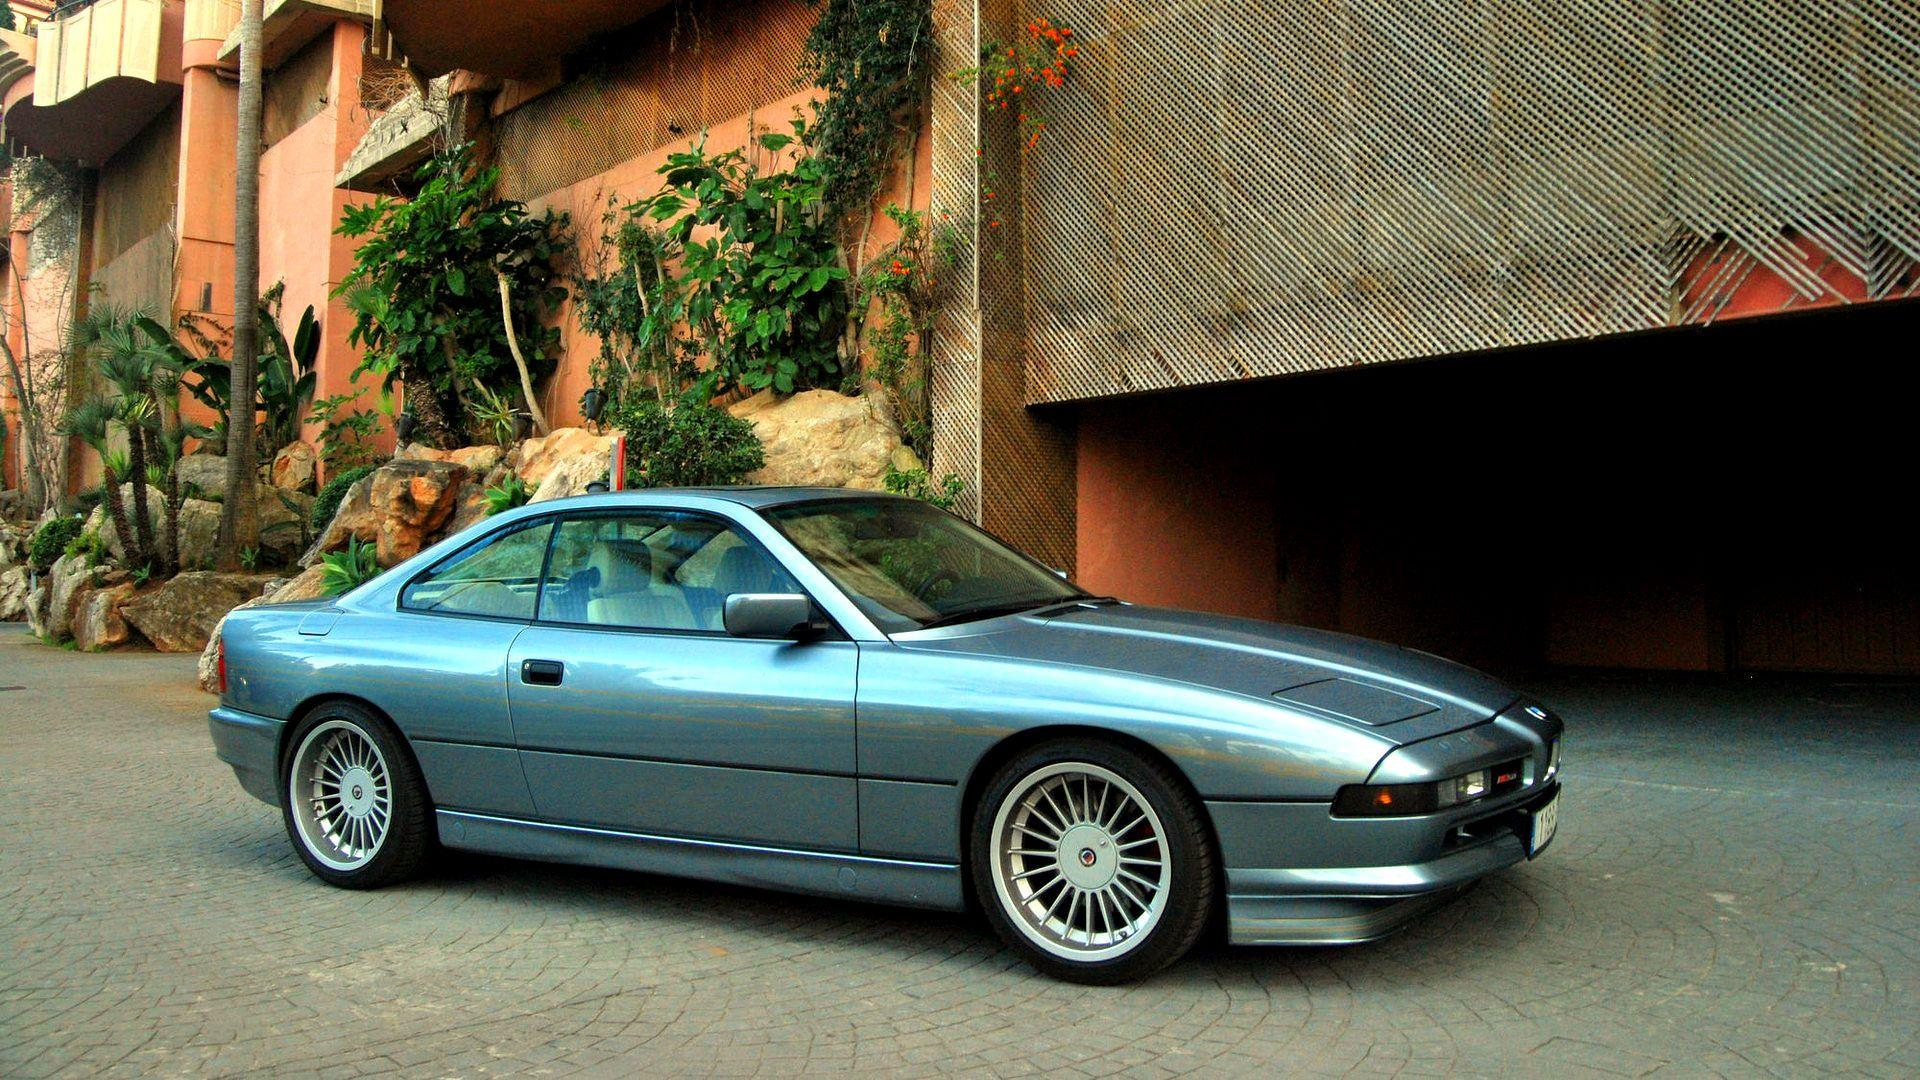 Own Alpinas More Powerful Take On The BMW Series For K - Bmw 850 alpina for sale